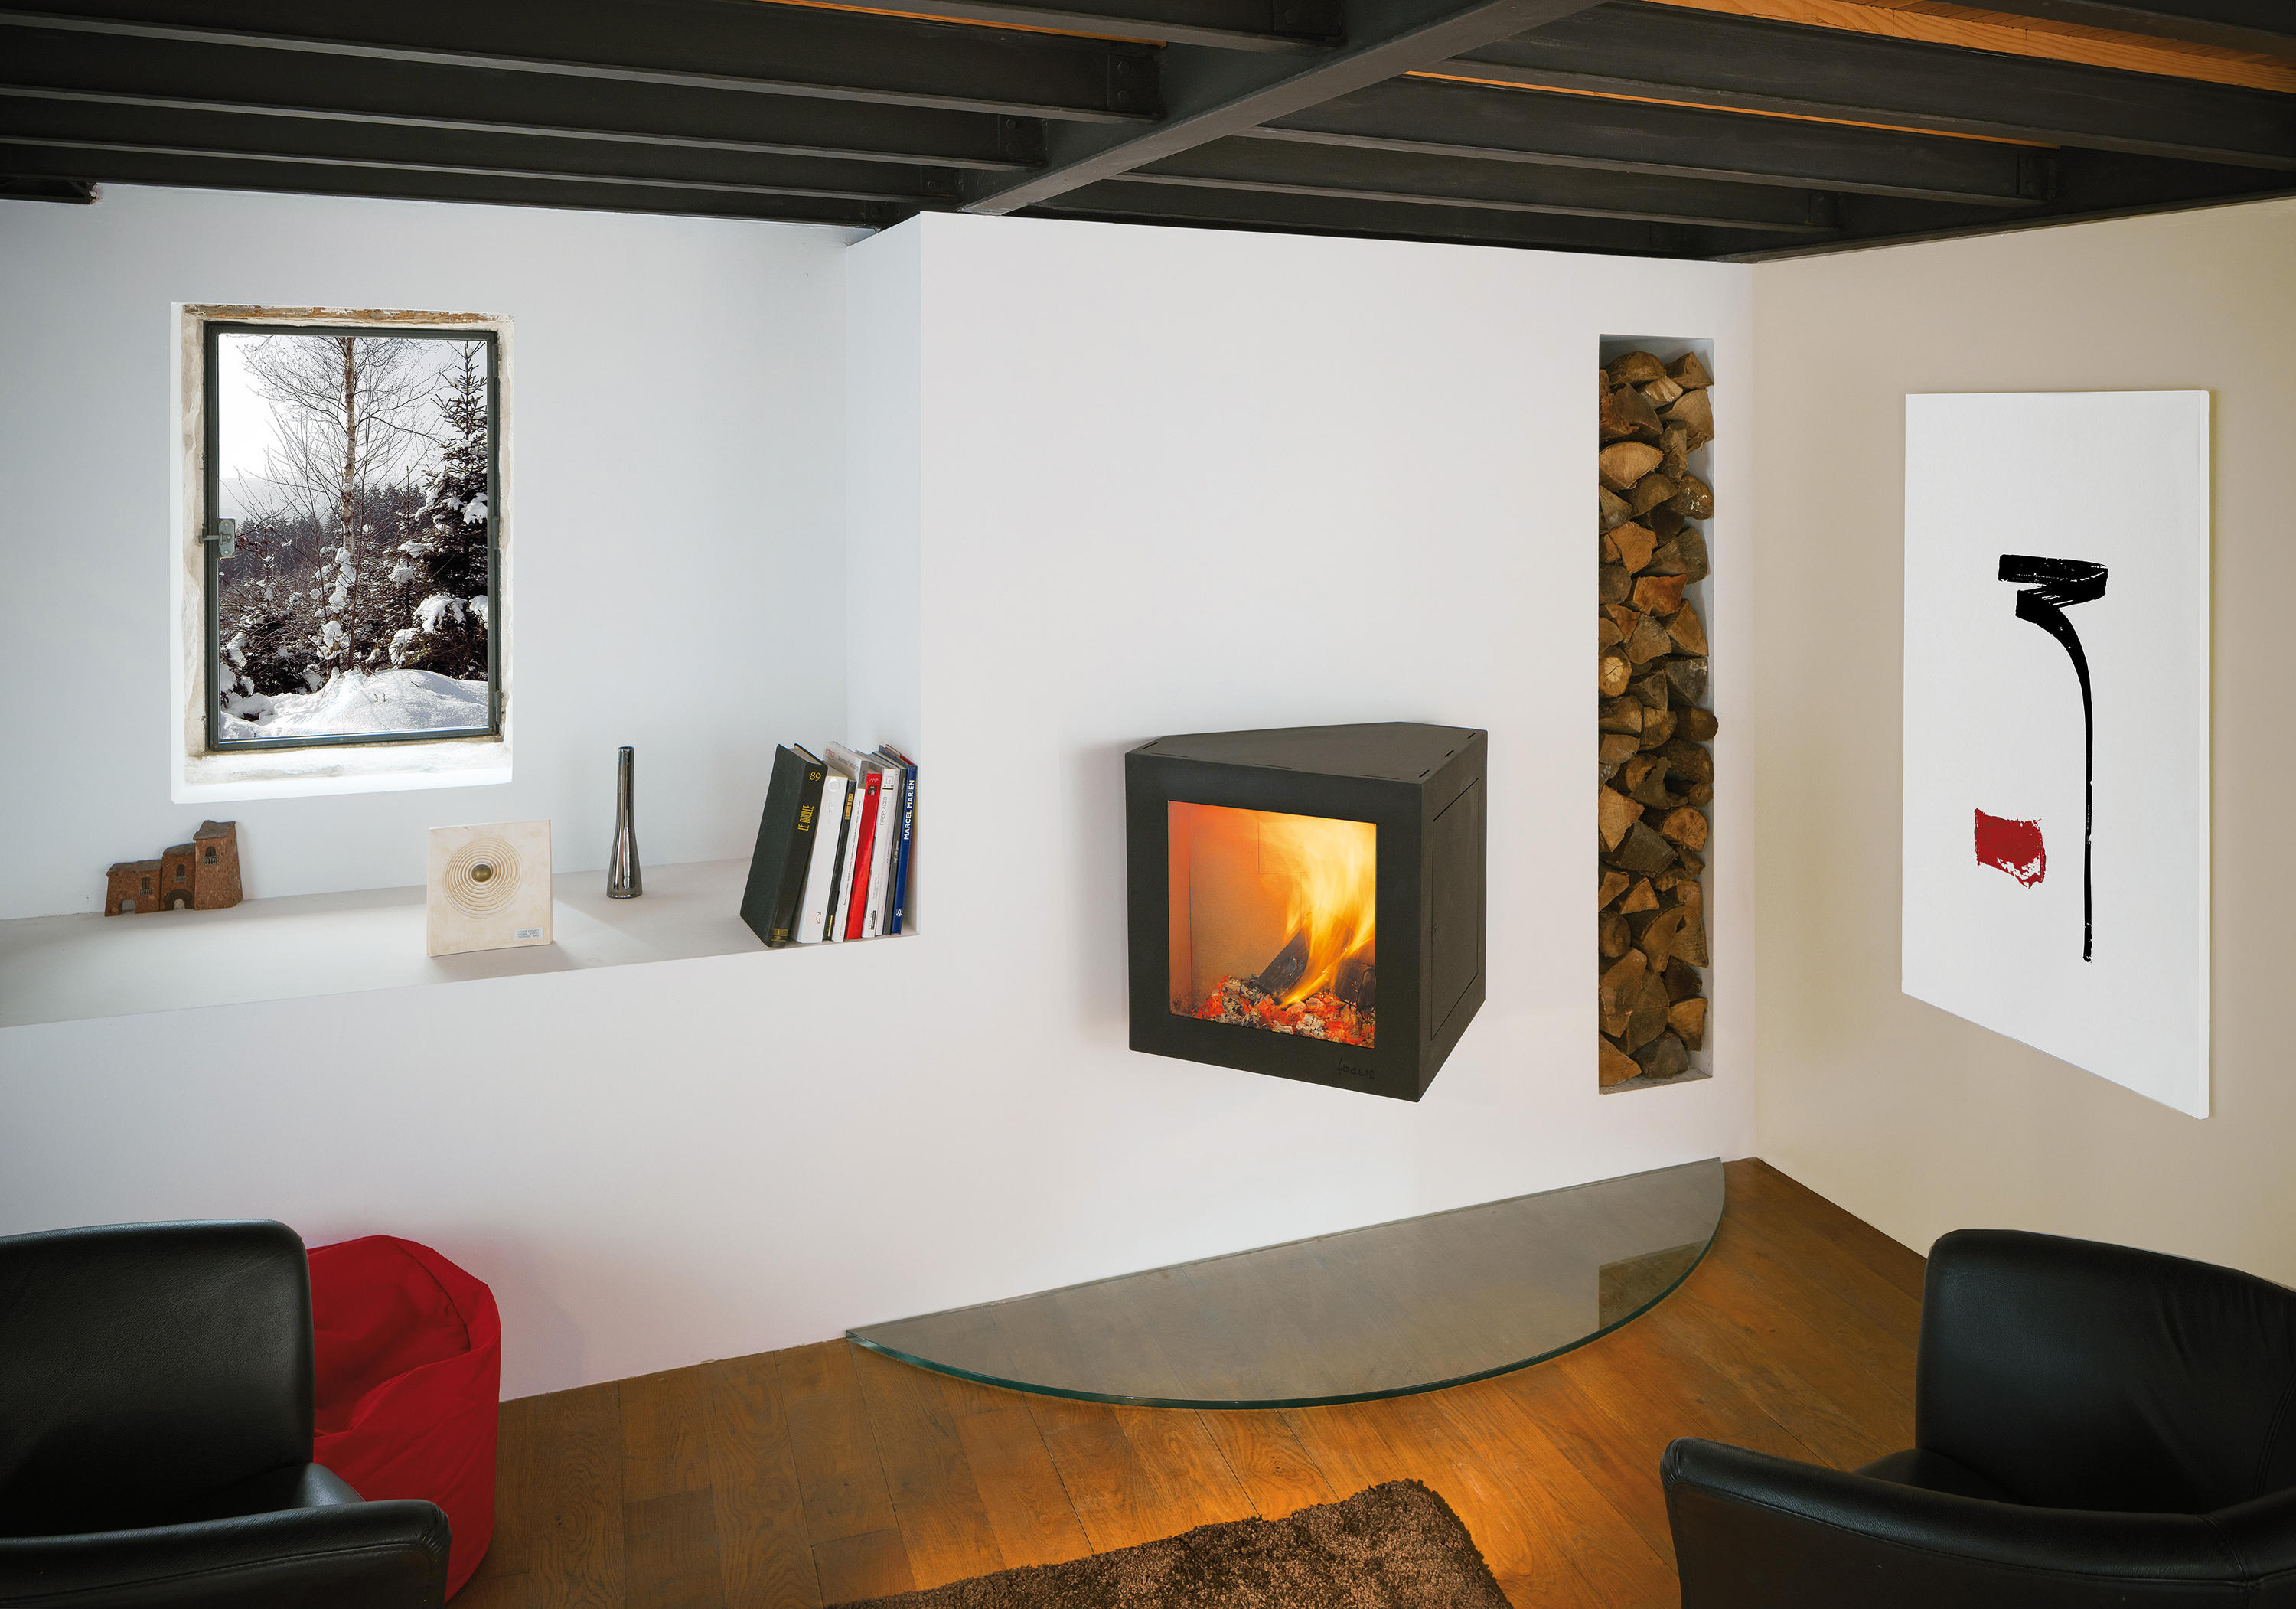 Cheminées Viols Le Fort Cubifocus Stoves From Focus Architonic